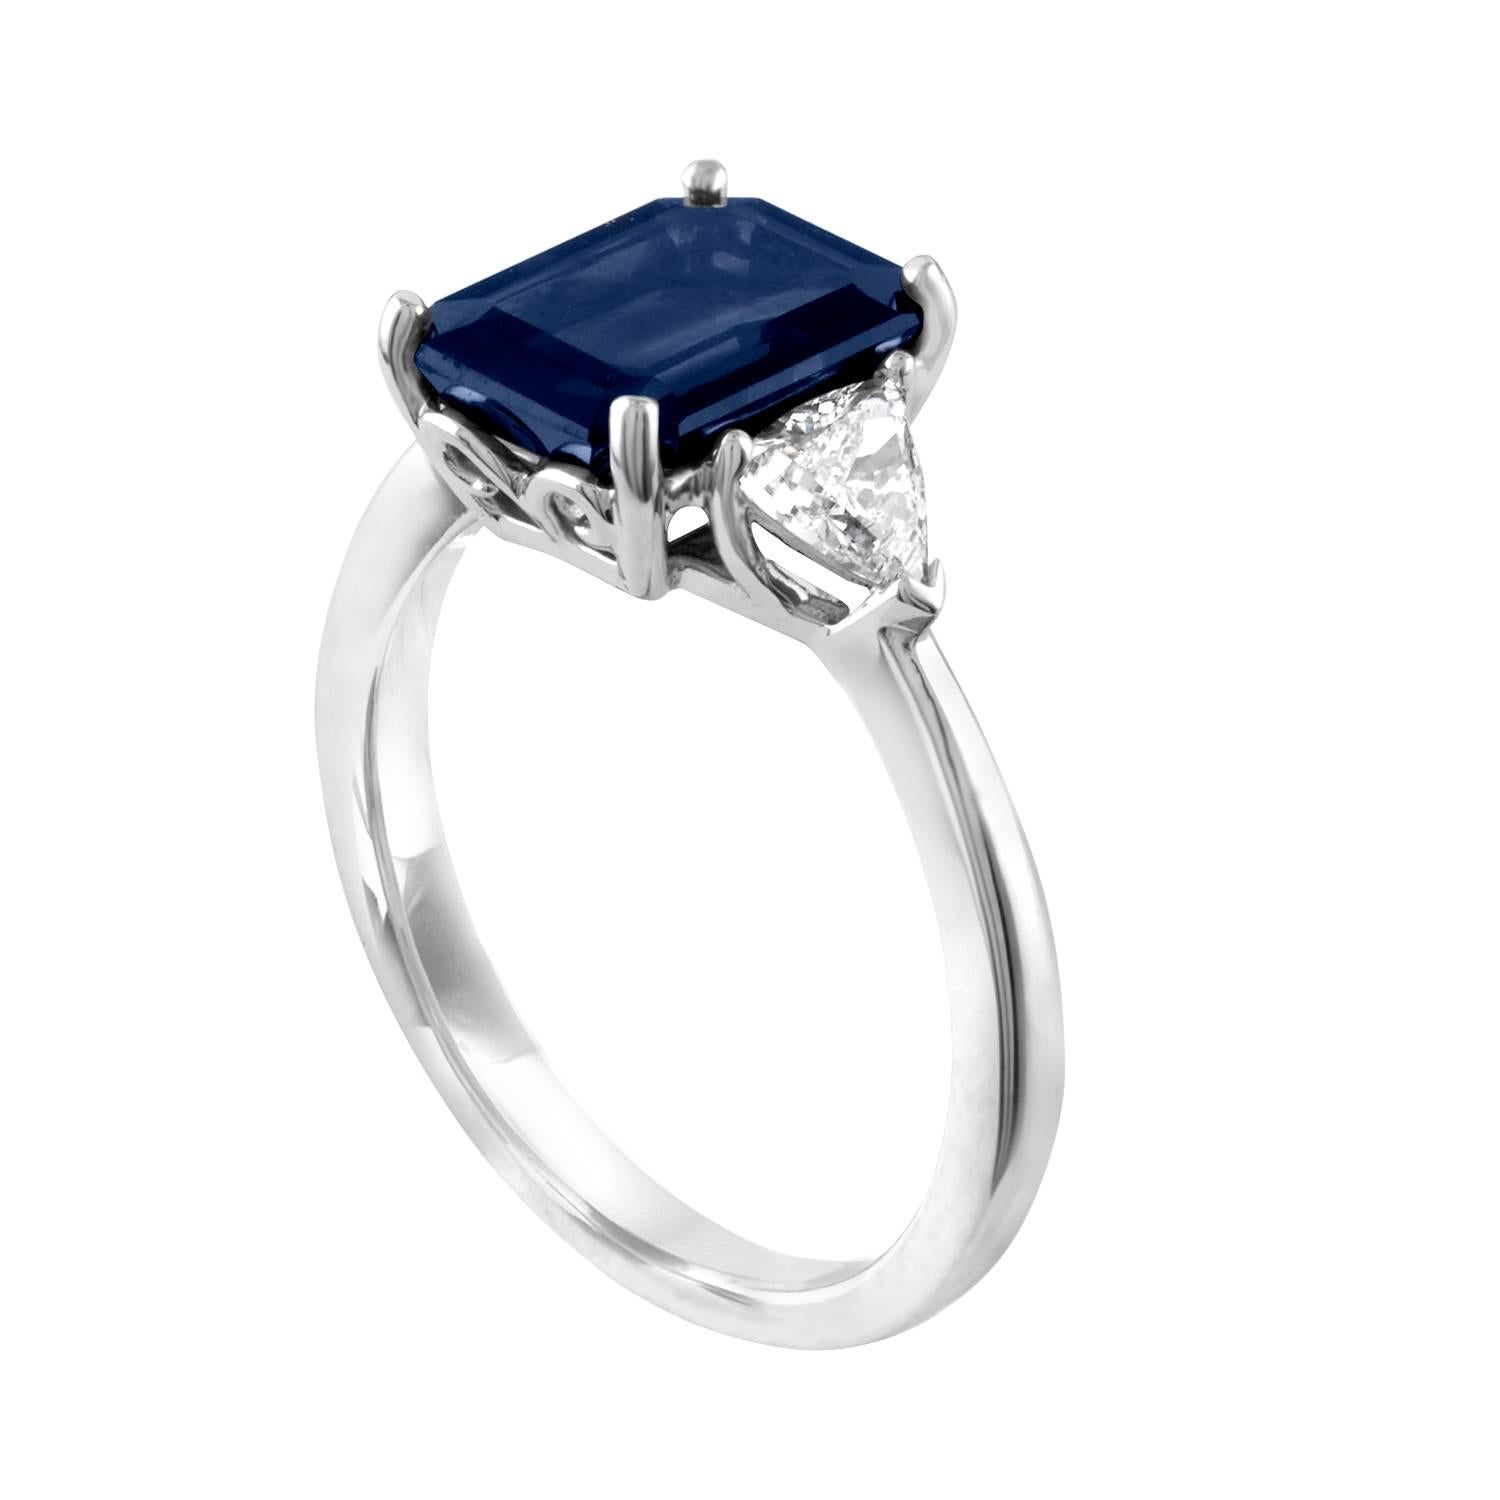 sapphire gold devotionsolitairering solitaire midnight front rings products whitegold devotion dark darker white maniamania ring engagement bluesapphire blue